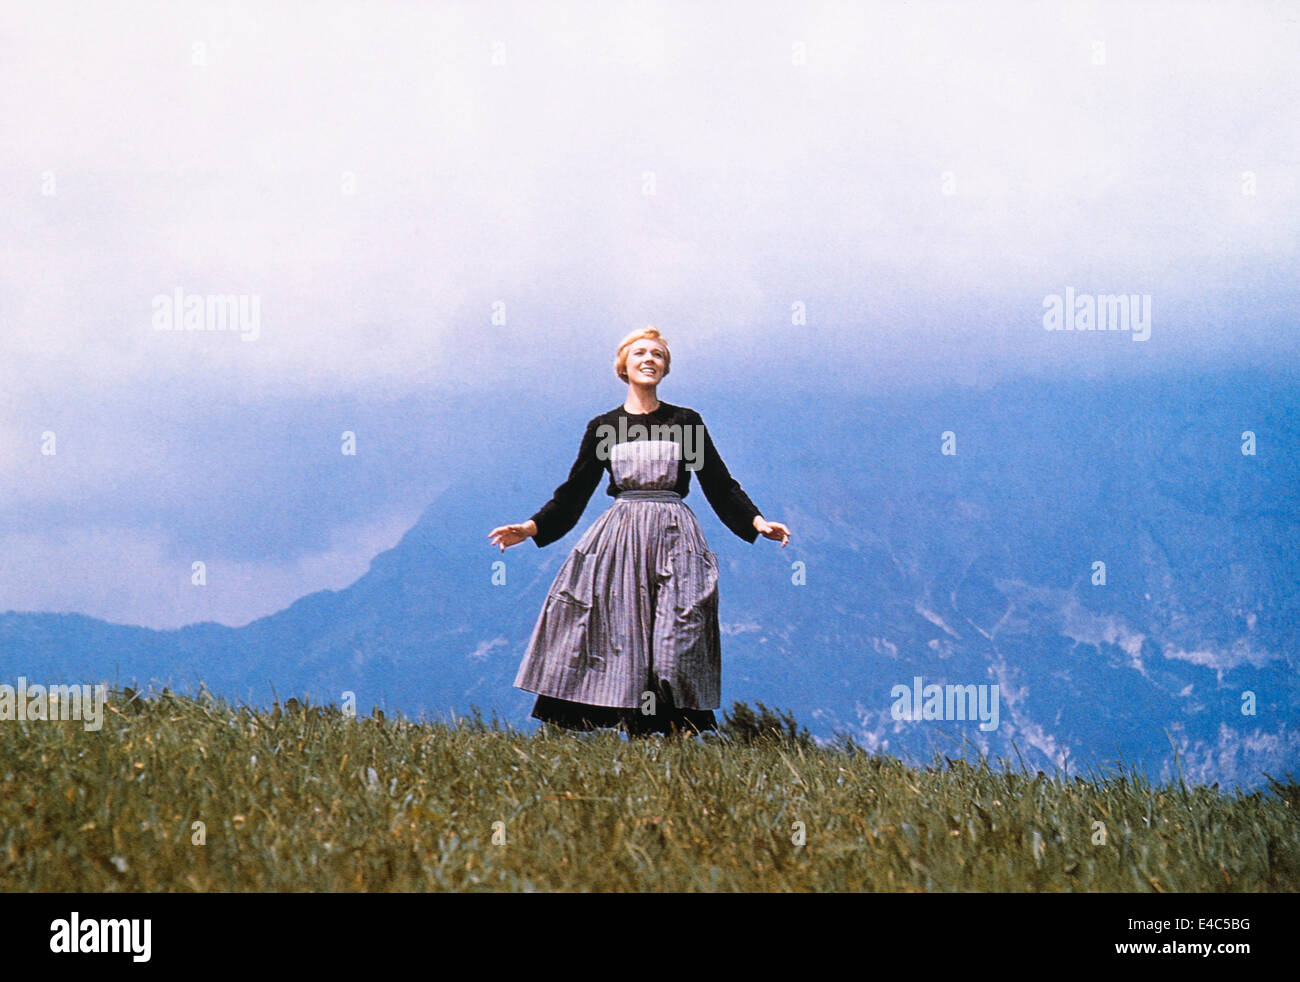 Julie Andrews, on-set of the Film, 'The Sound of Music', 1965 - Stock Image